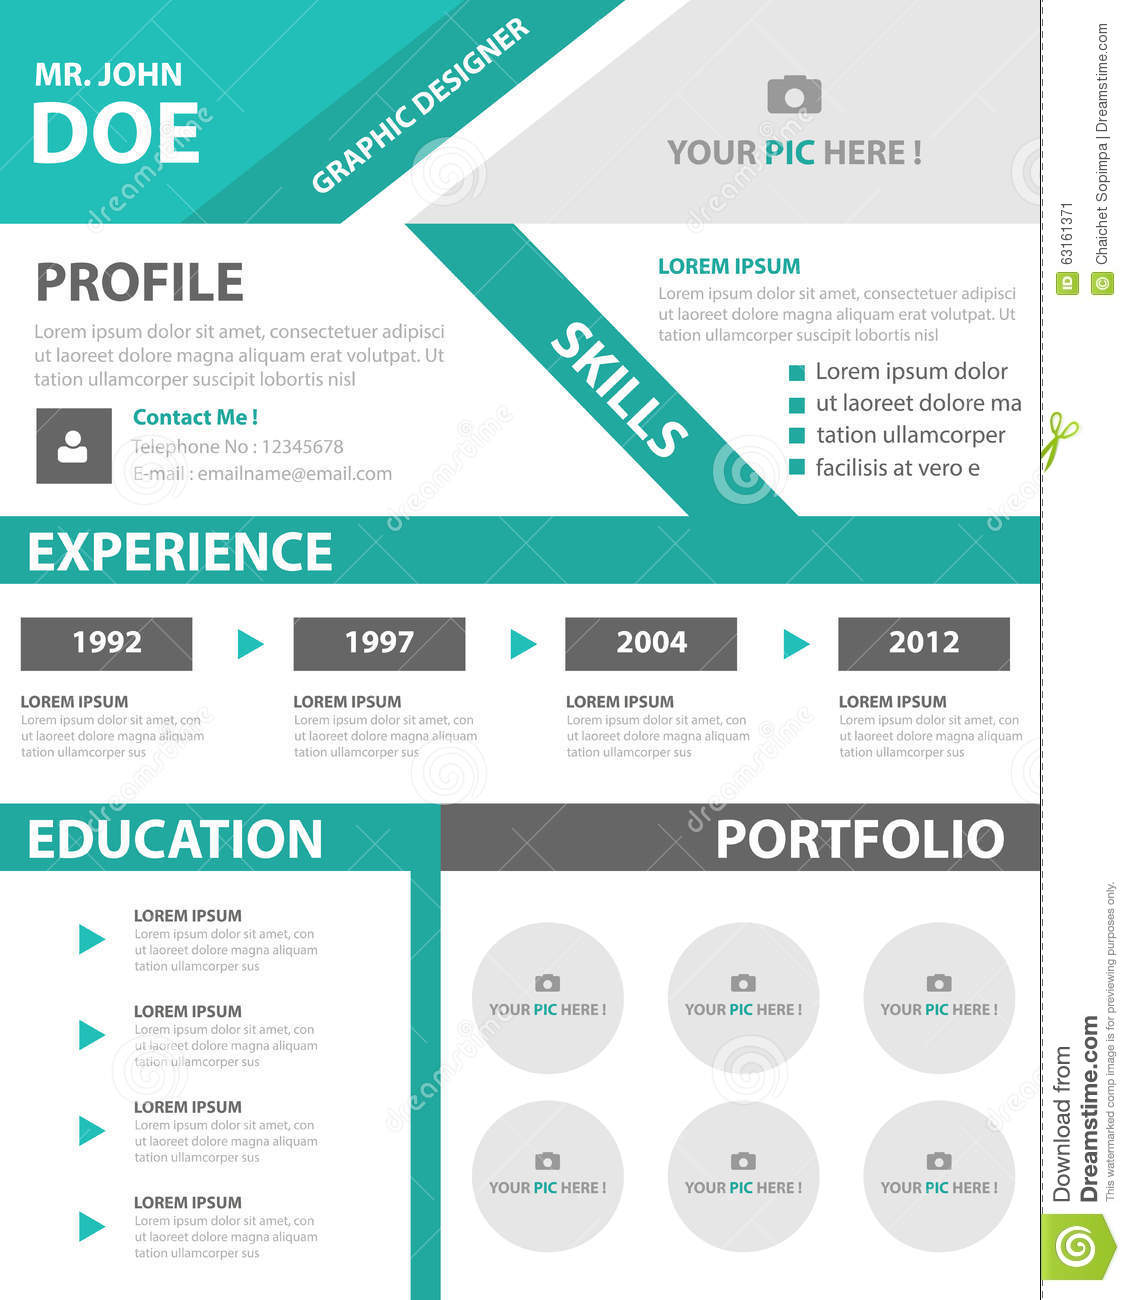 resume layout marketing professional resume cover letter sample resume layout marketing marketing resume examples marketing sample resumes green smart creative resume business profile cv